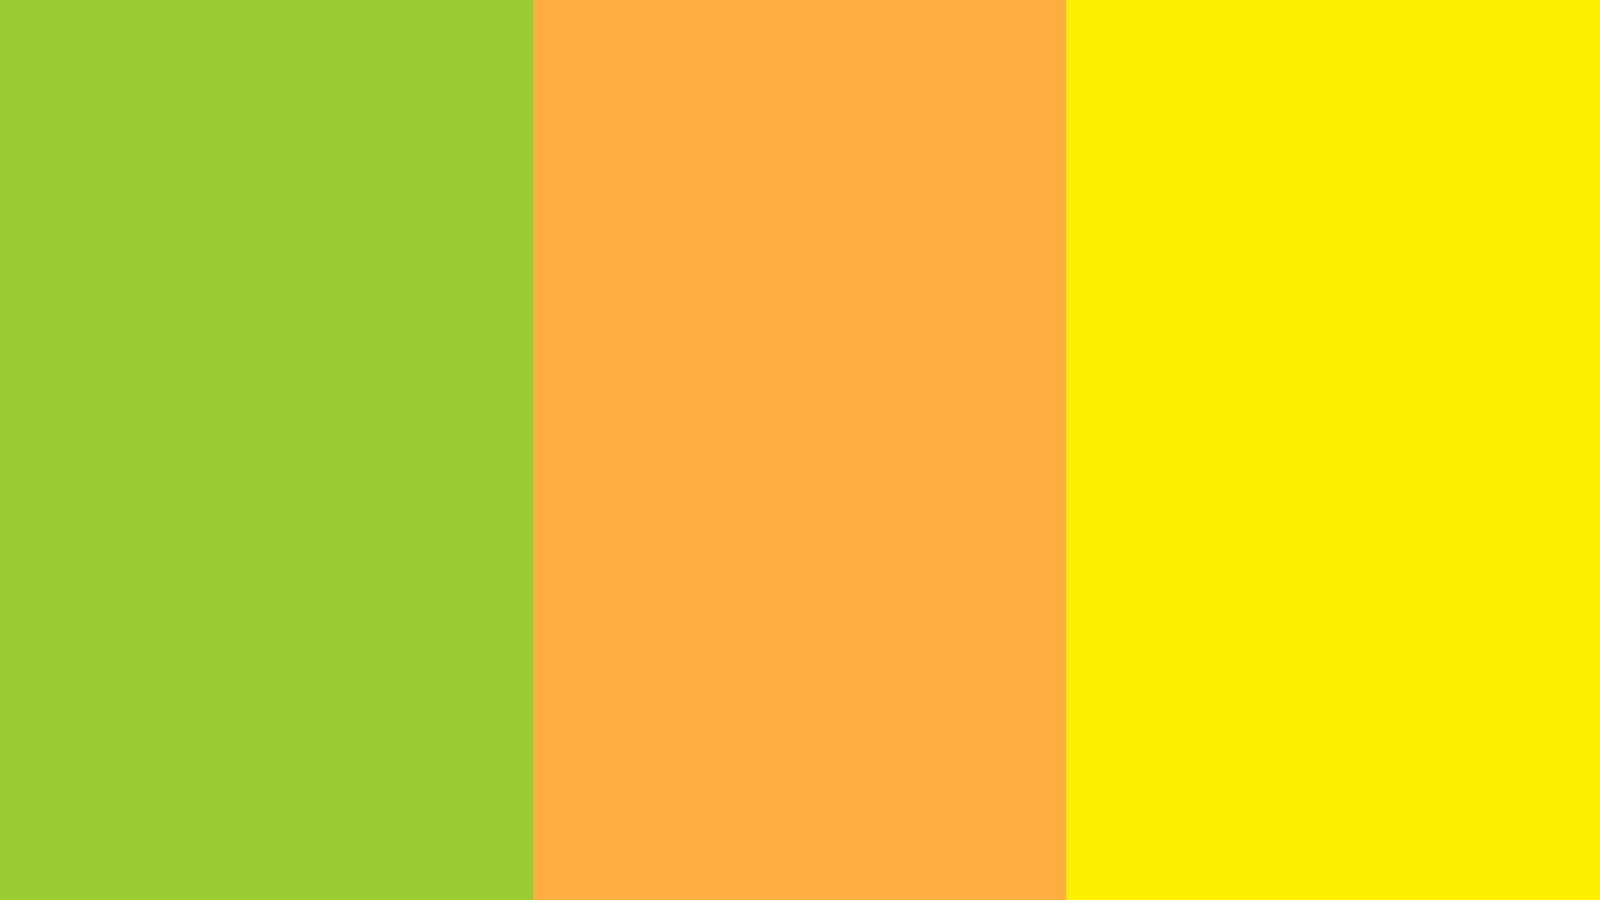 Yellow green Yellow Orange and Yellow Rose Three Color Background 1600x900